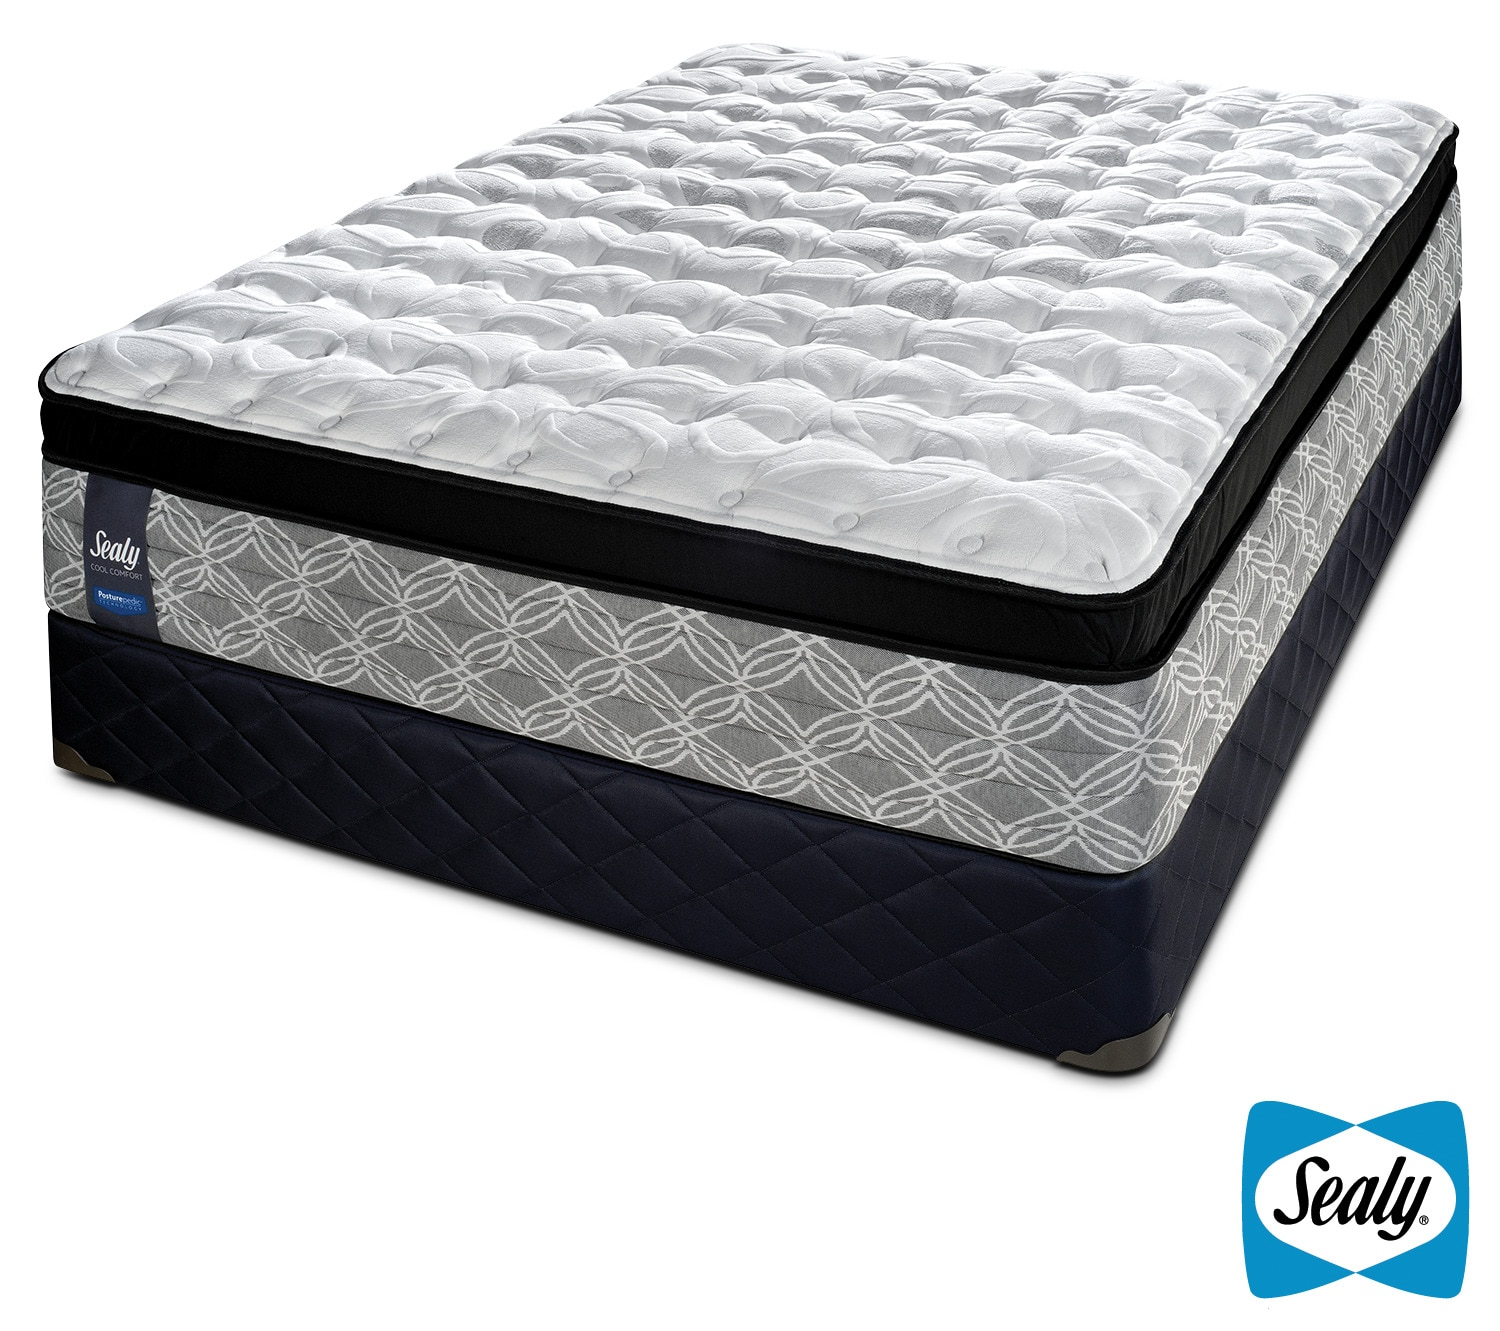 Sealy Sundown Plush Queen Mattress and Boxspring Set